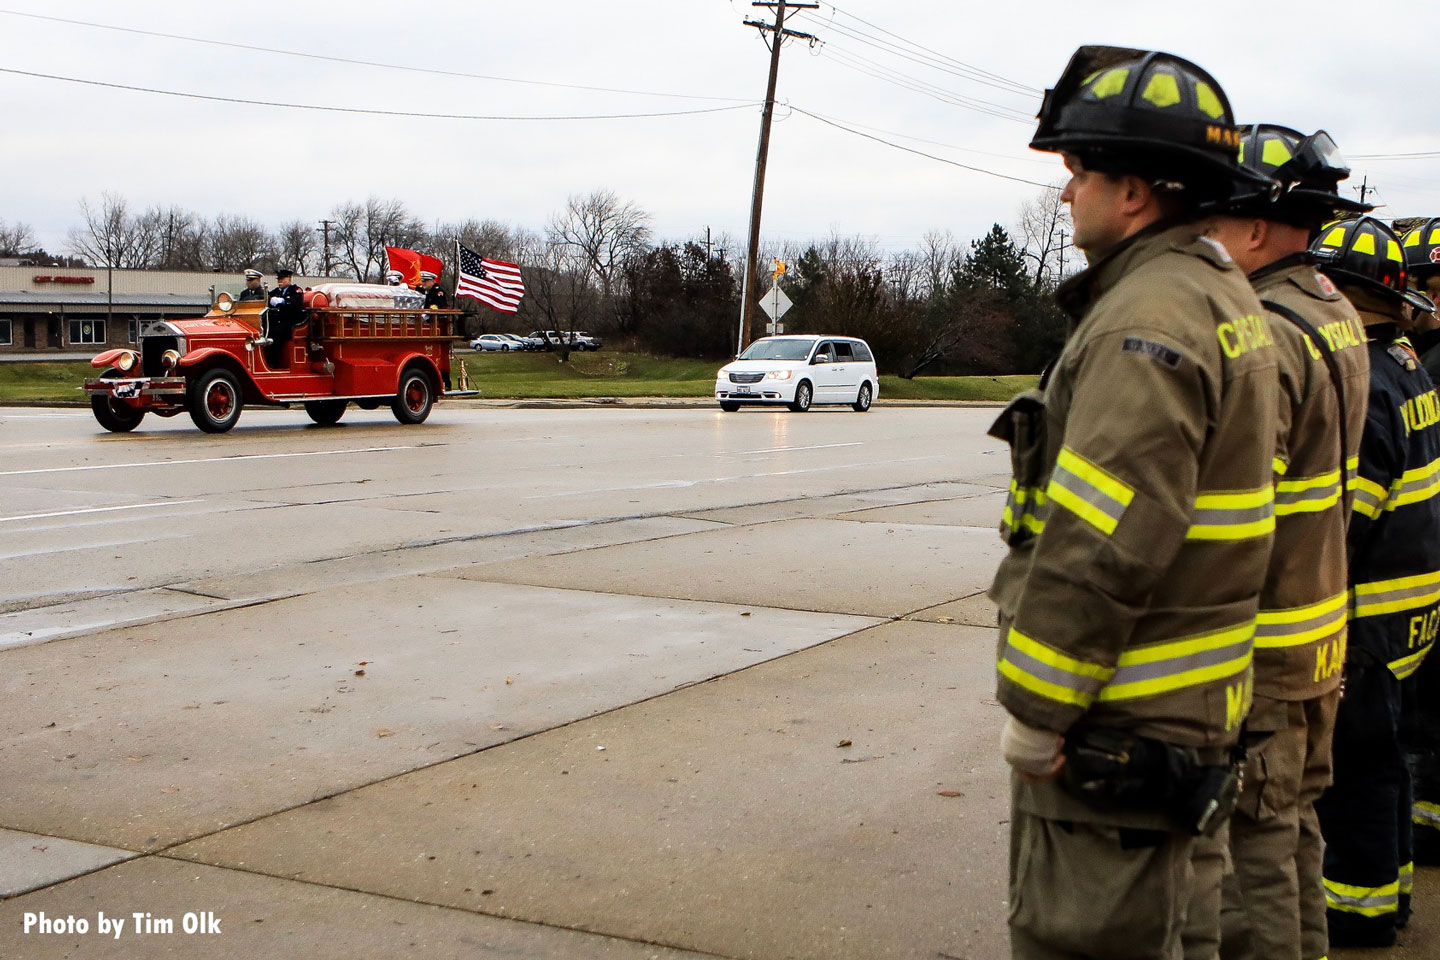 Firefighters stand at attention as the rig passes by.